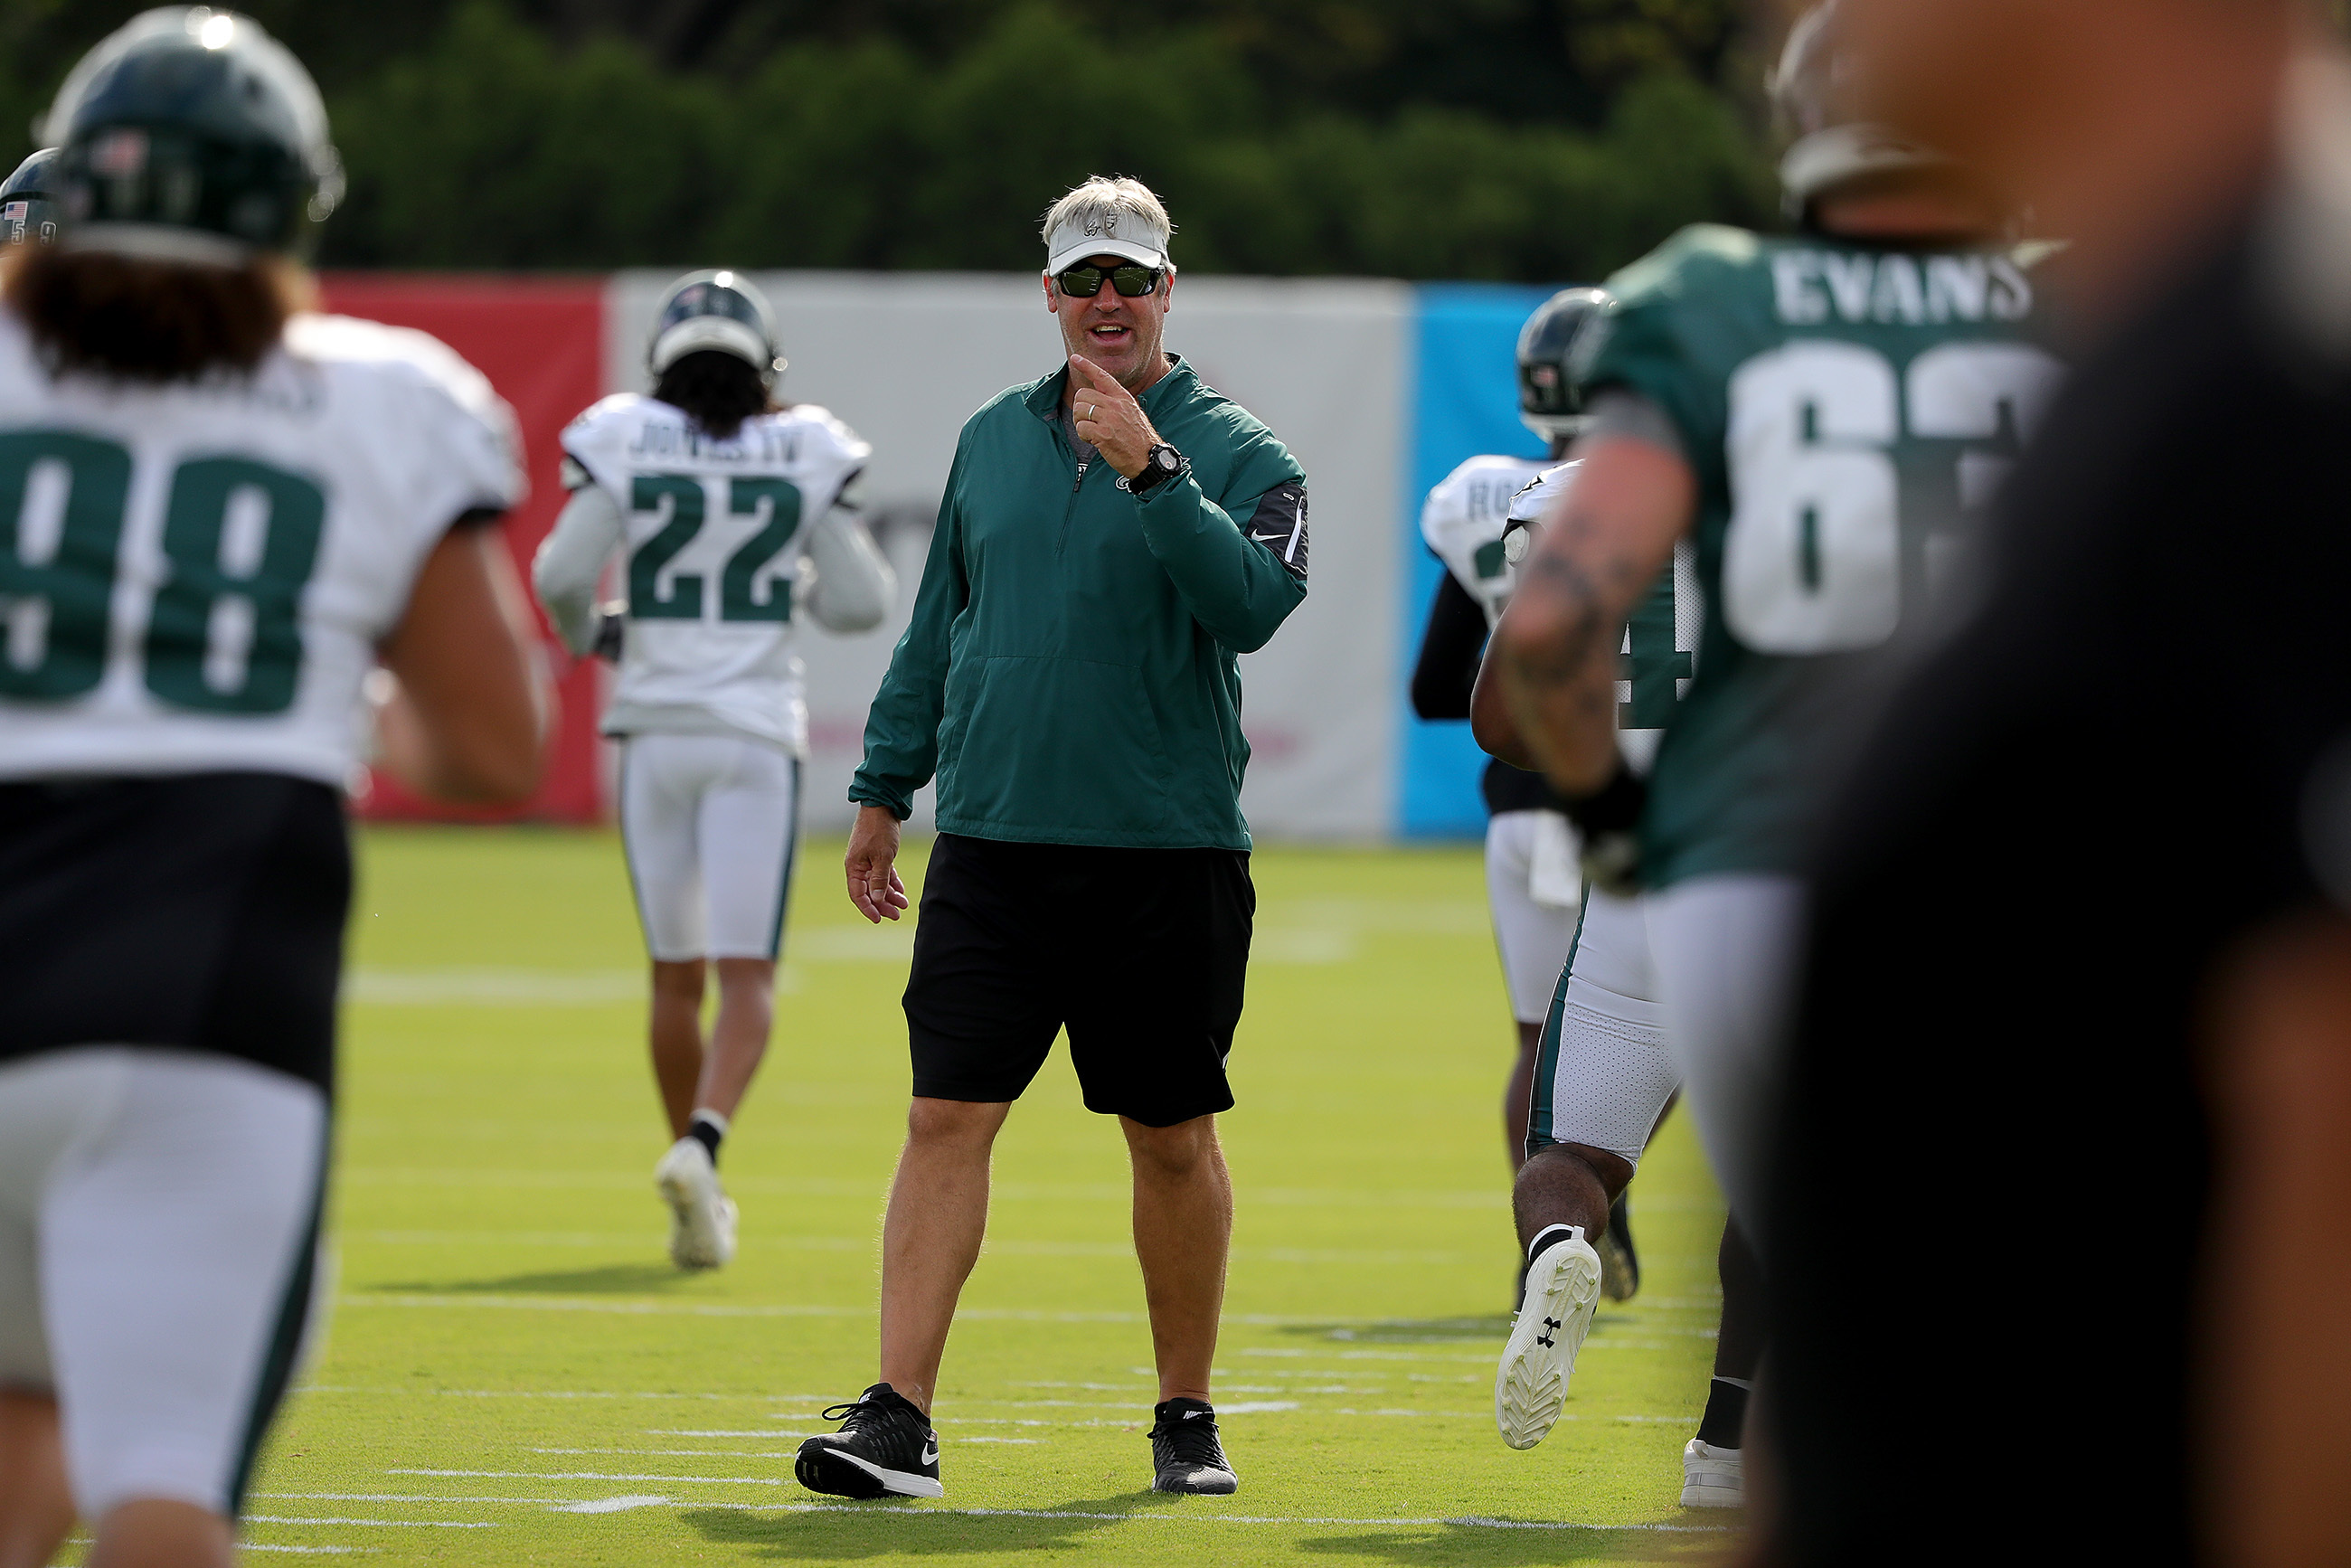 Eagles' head coach Doug Pederson watches during the Philadelphia Eagles training camp at the NovaCare complex in Philadelphia, PA on July 31, 2018. DAVID MAIALETTI / Staff Photographer